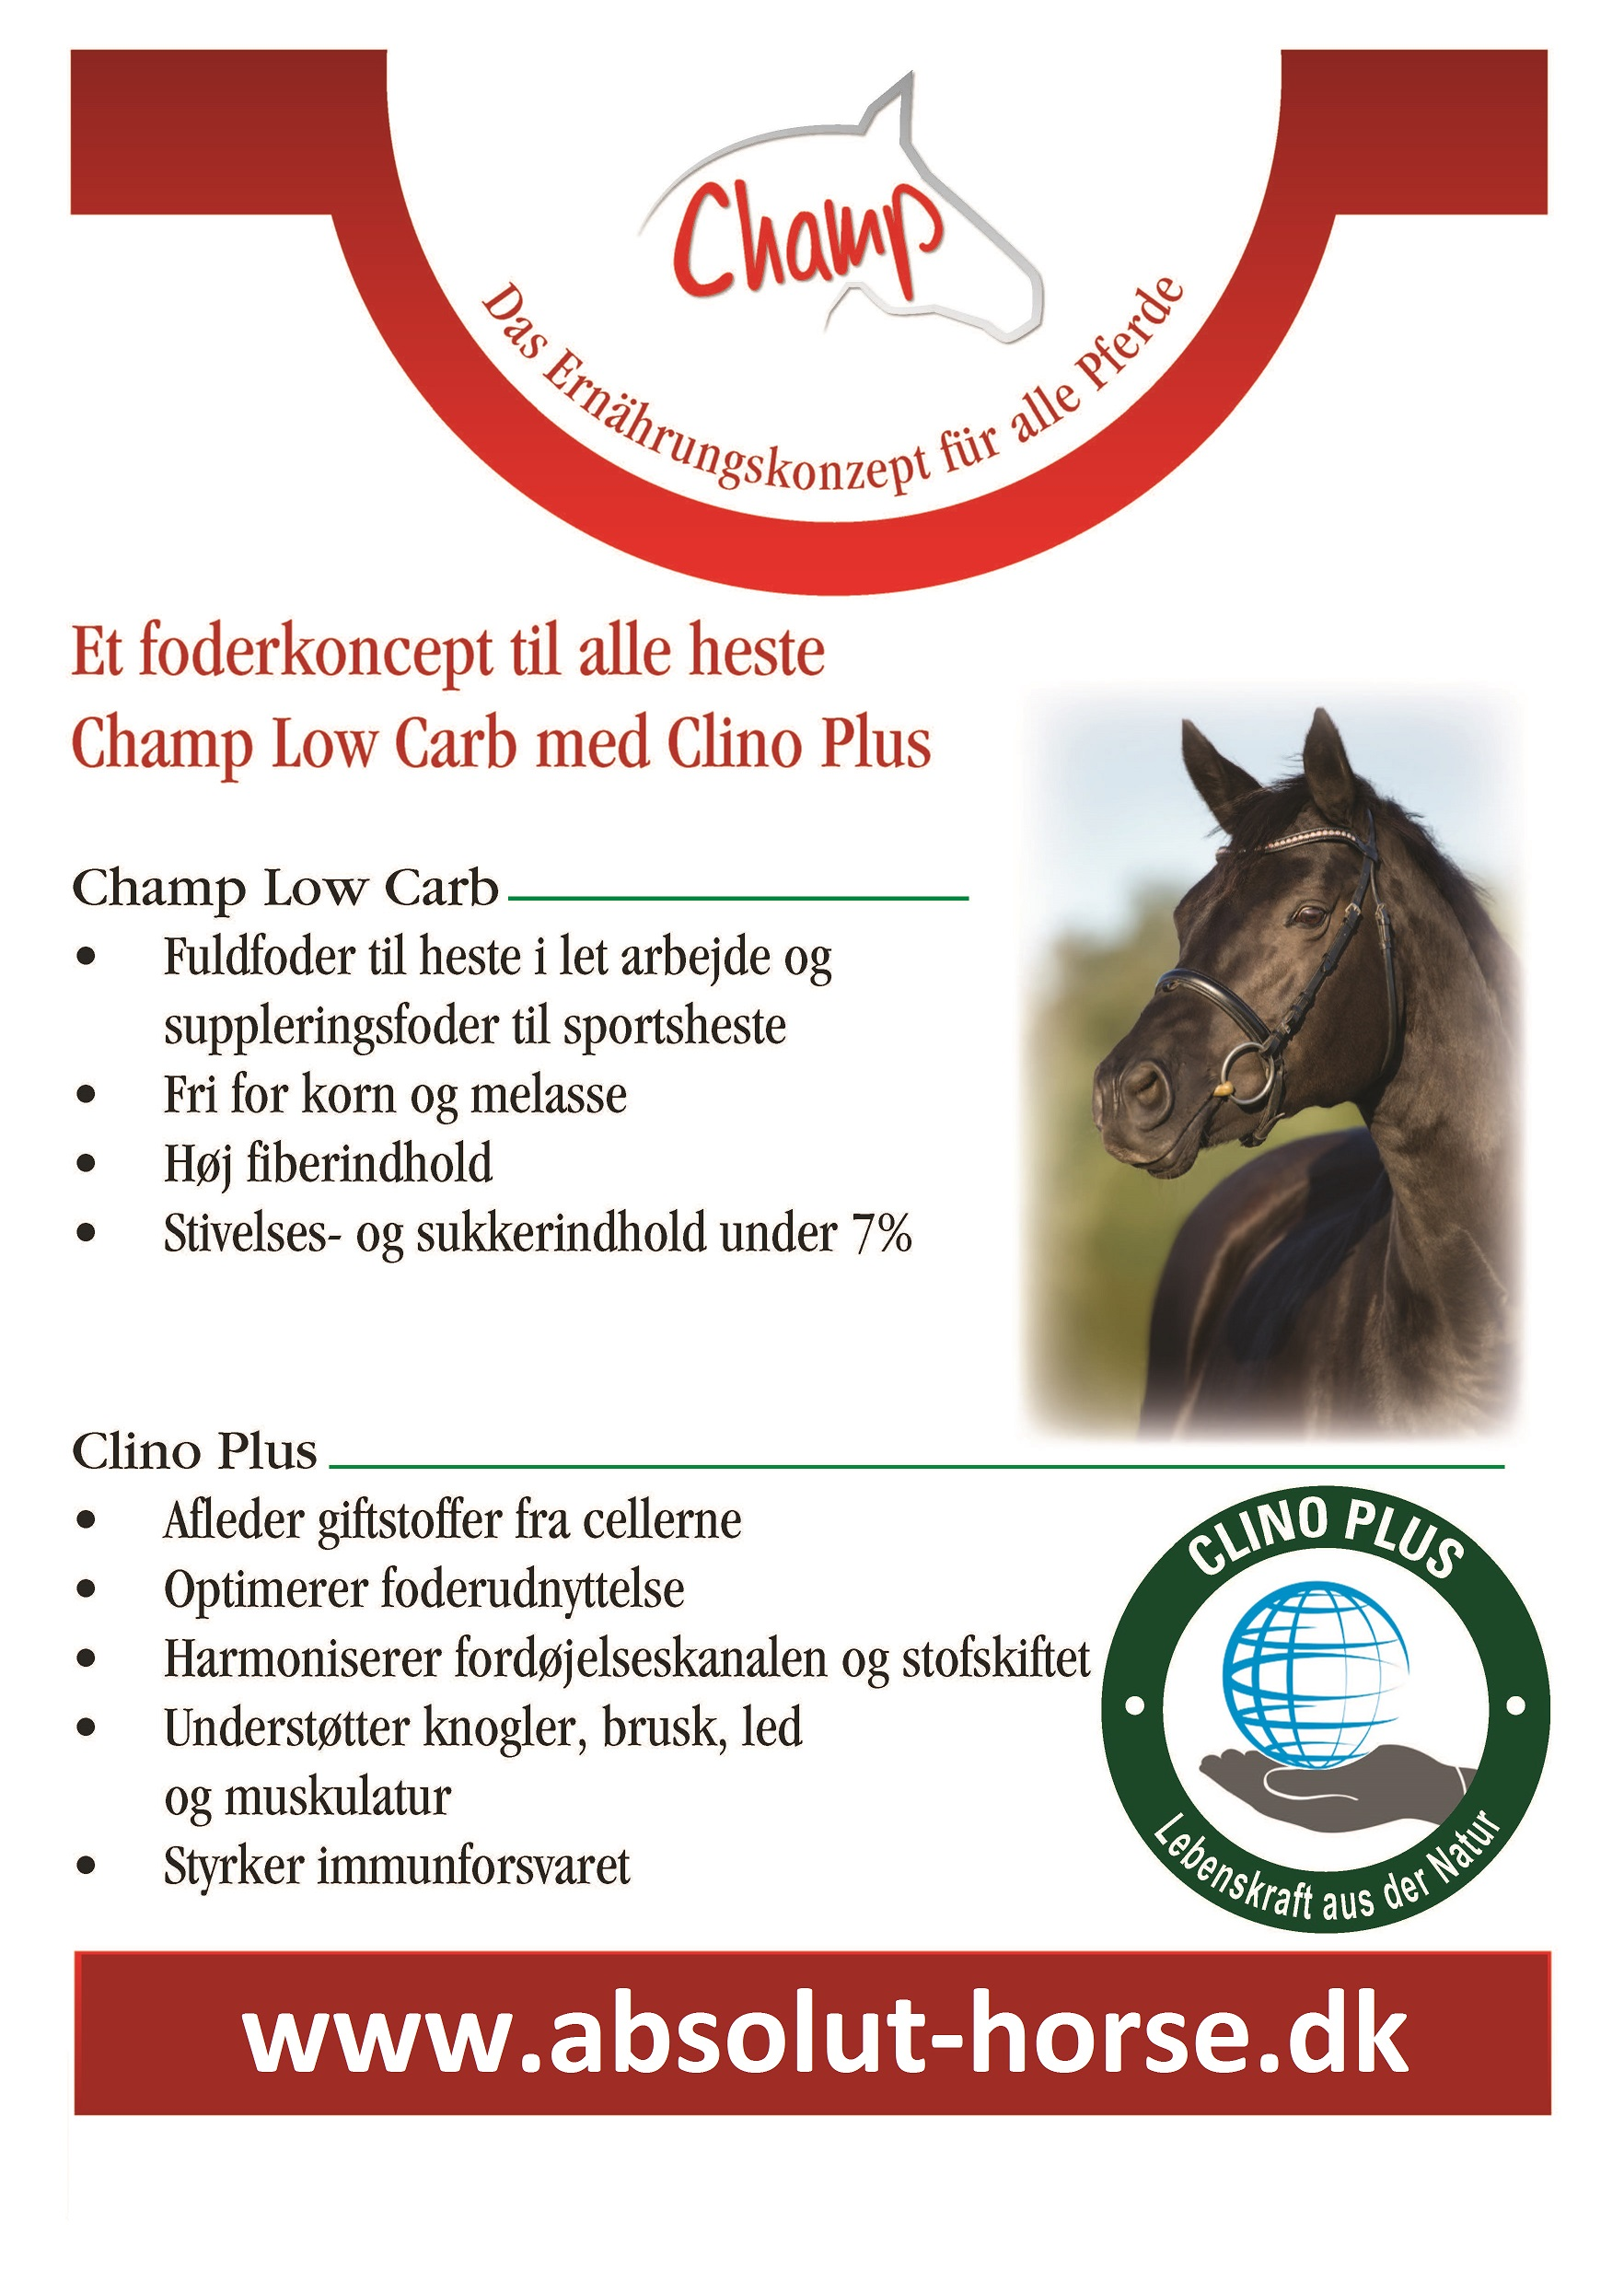 Champ Low Carb med ..... (CLINO PLUS)